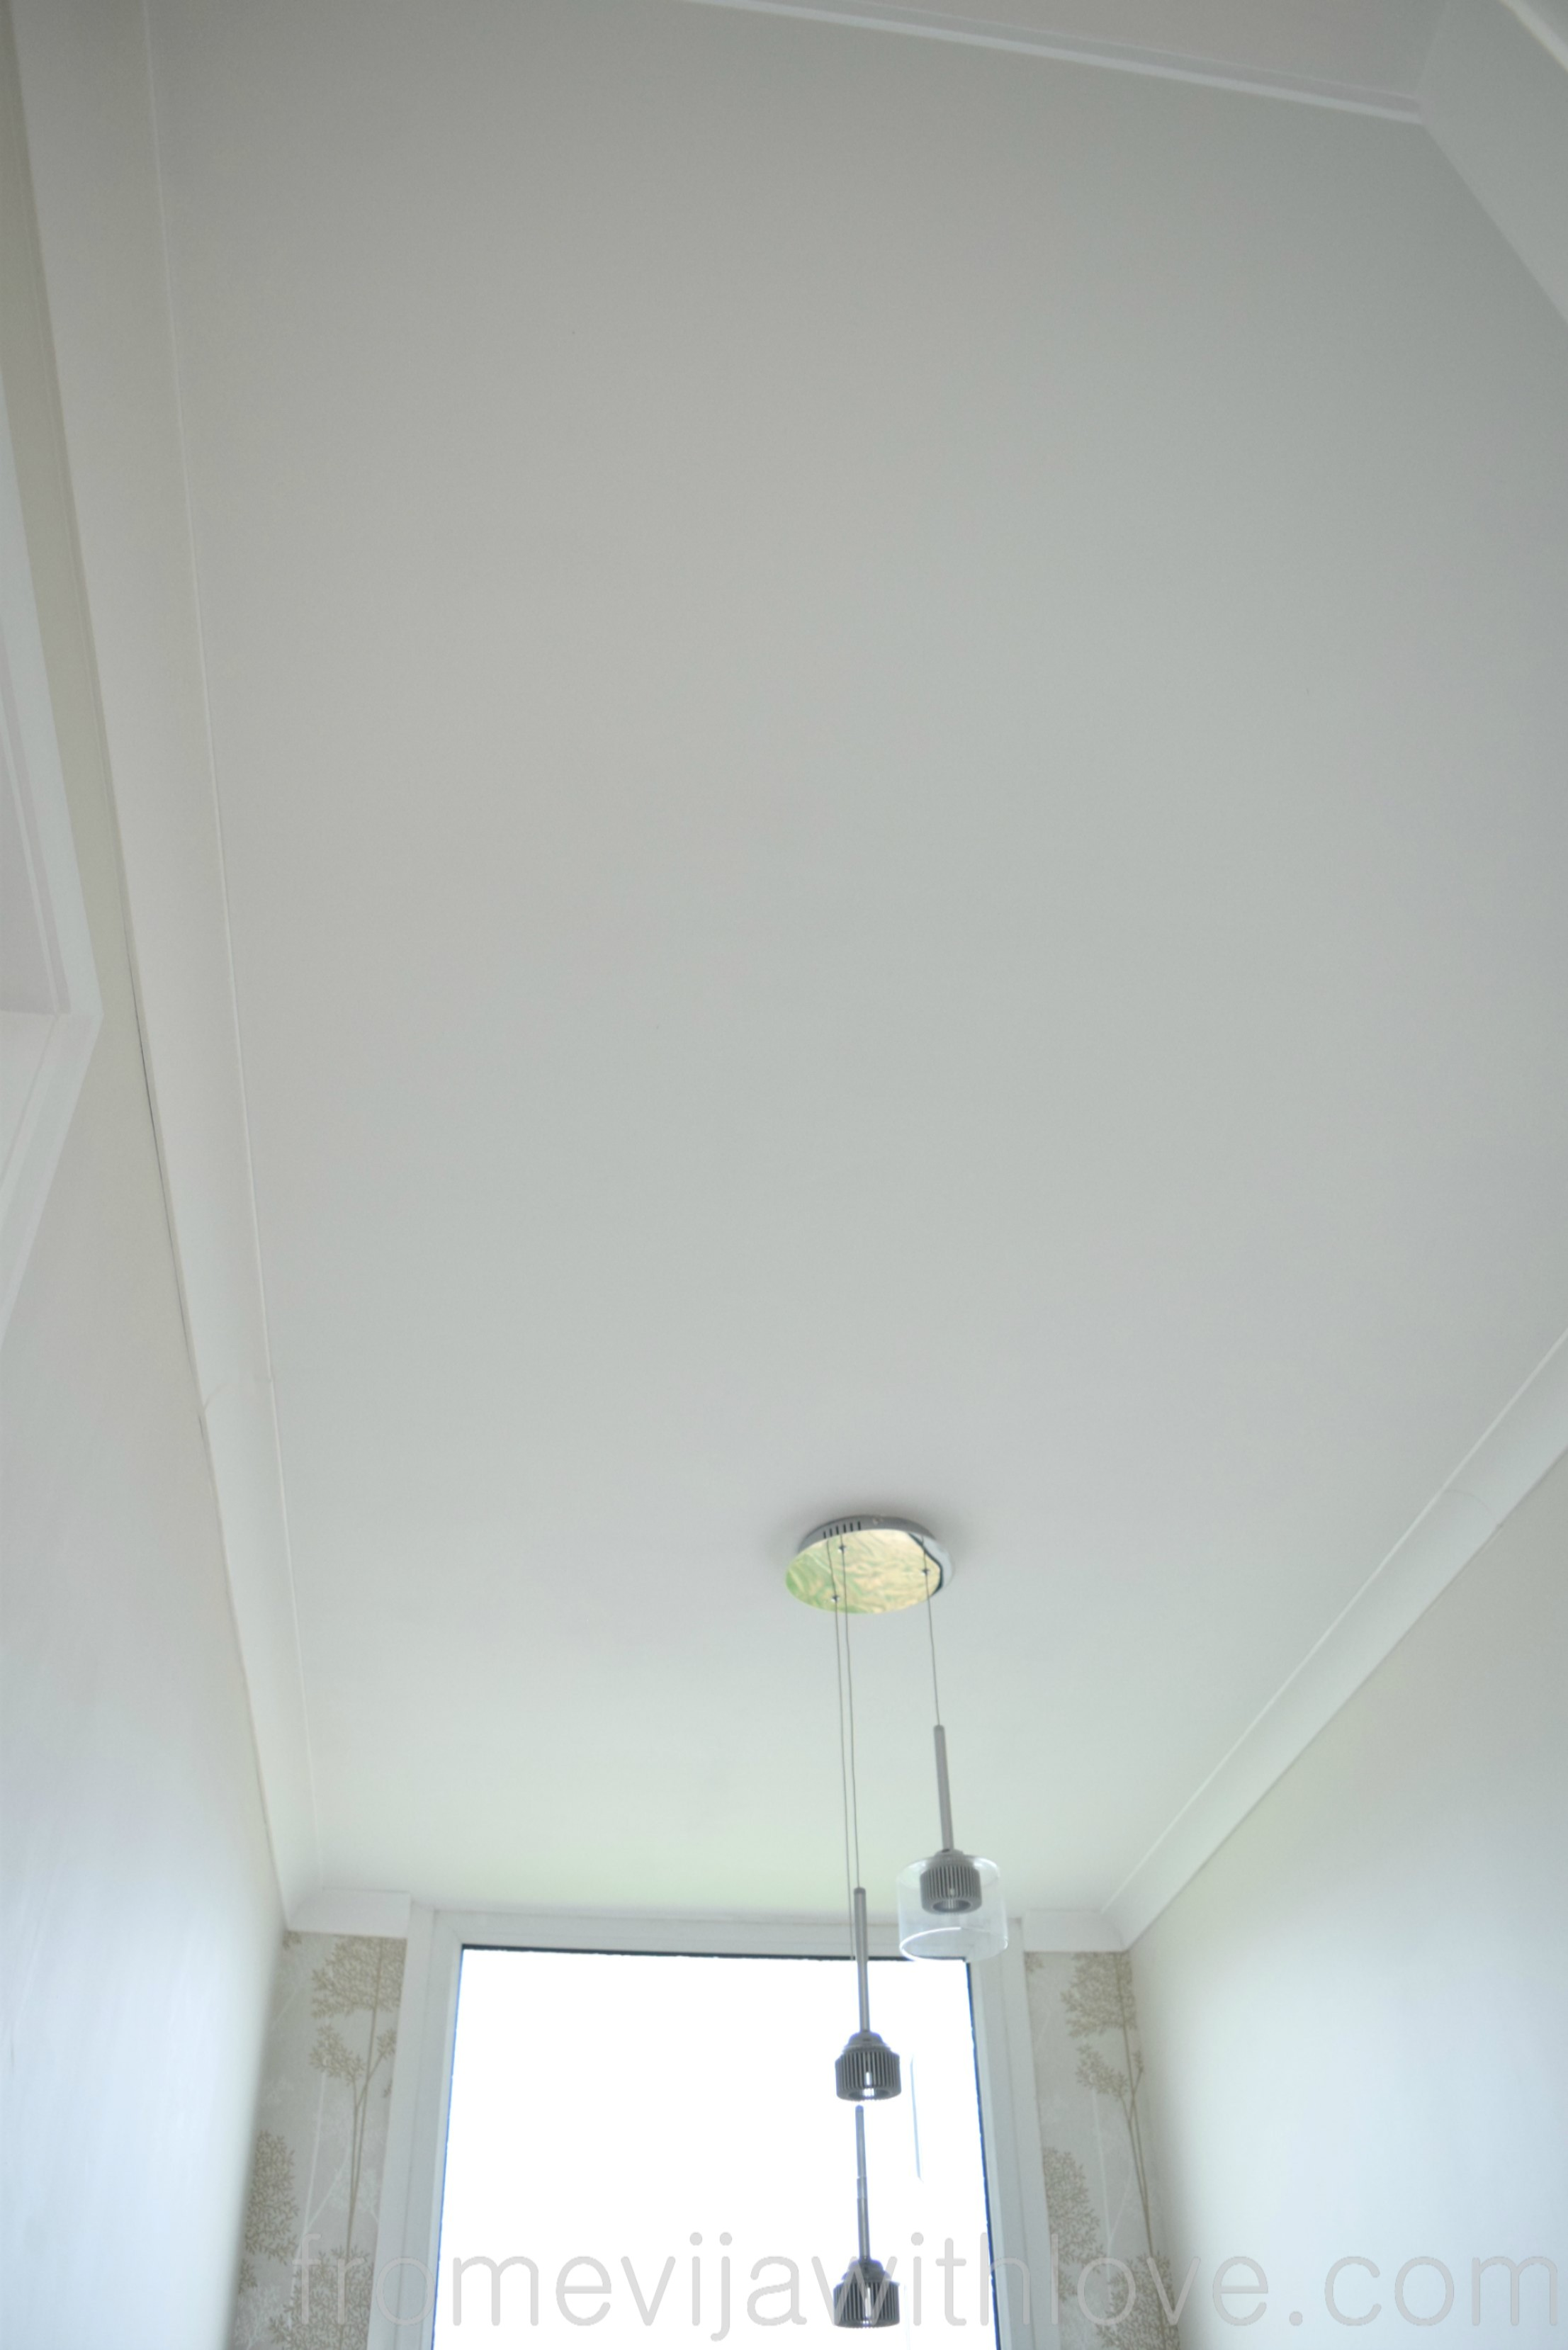 How To Fix And Level A Sagging Ceiling From Evija With Love